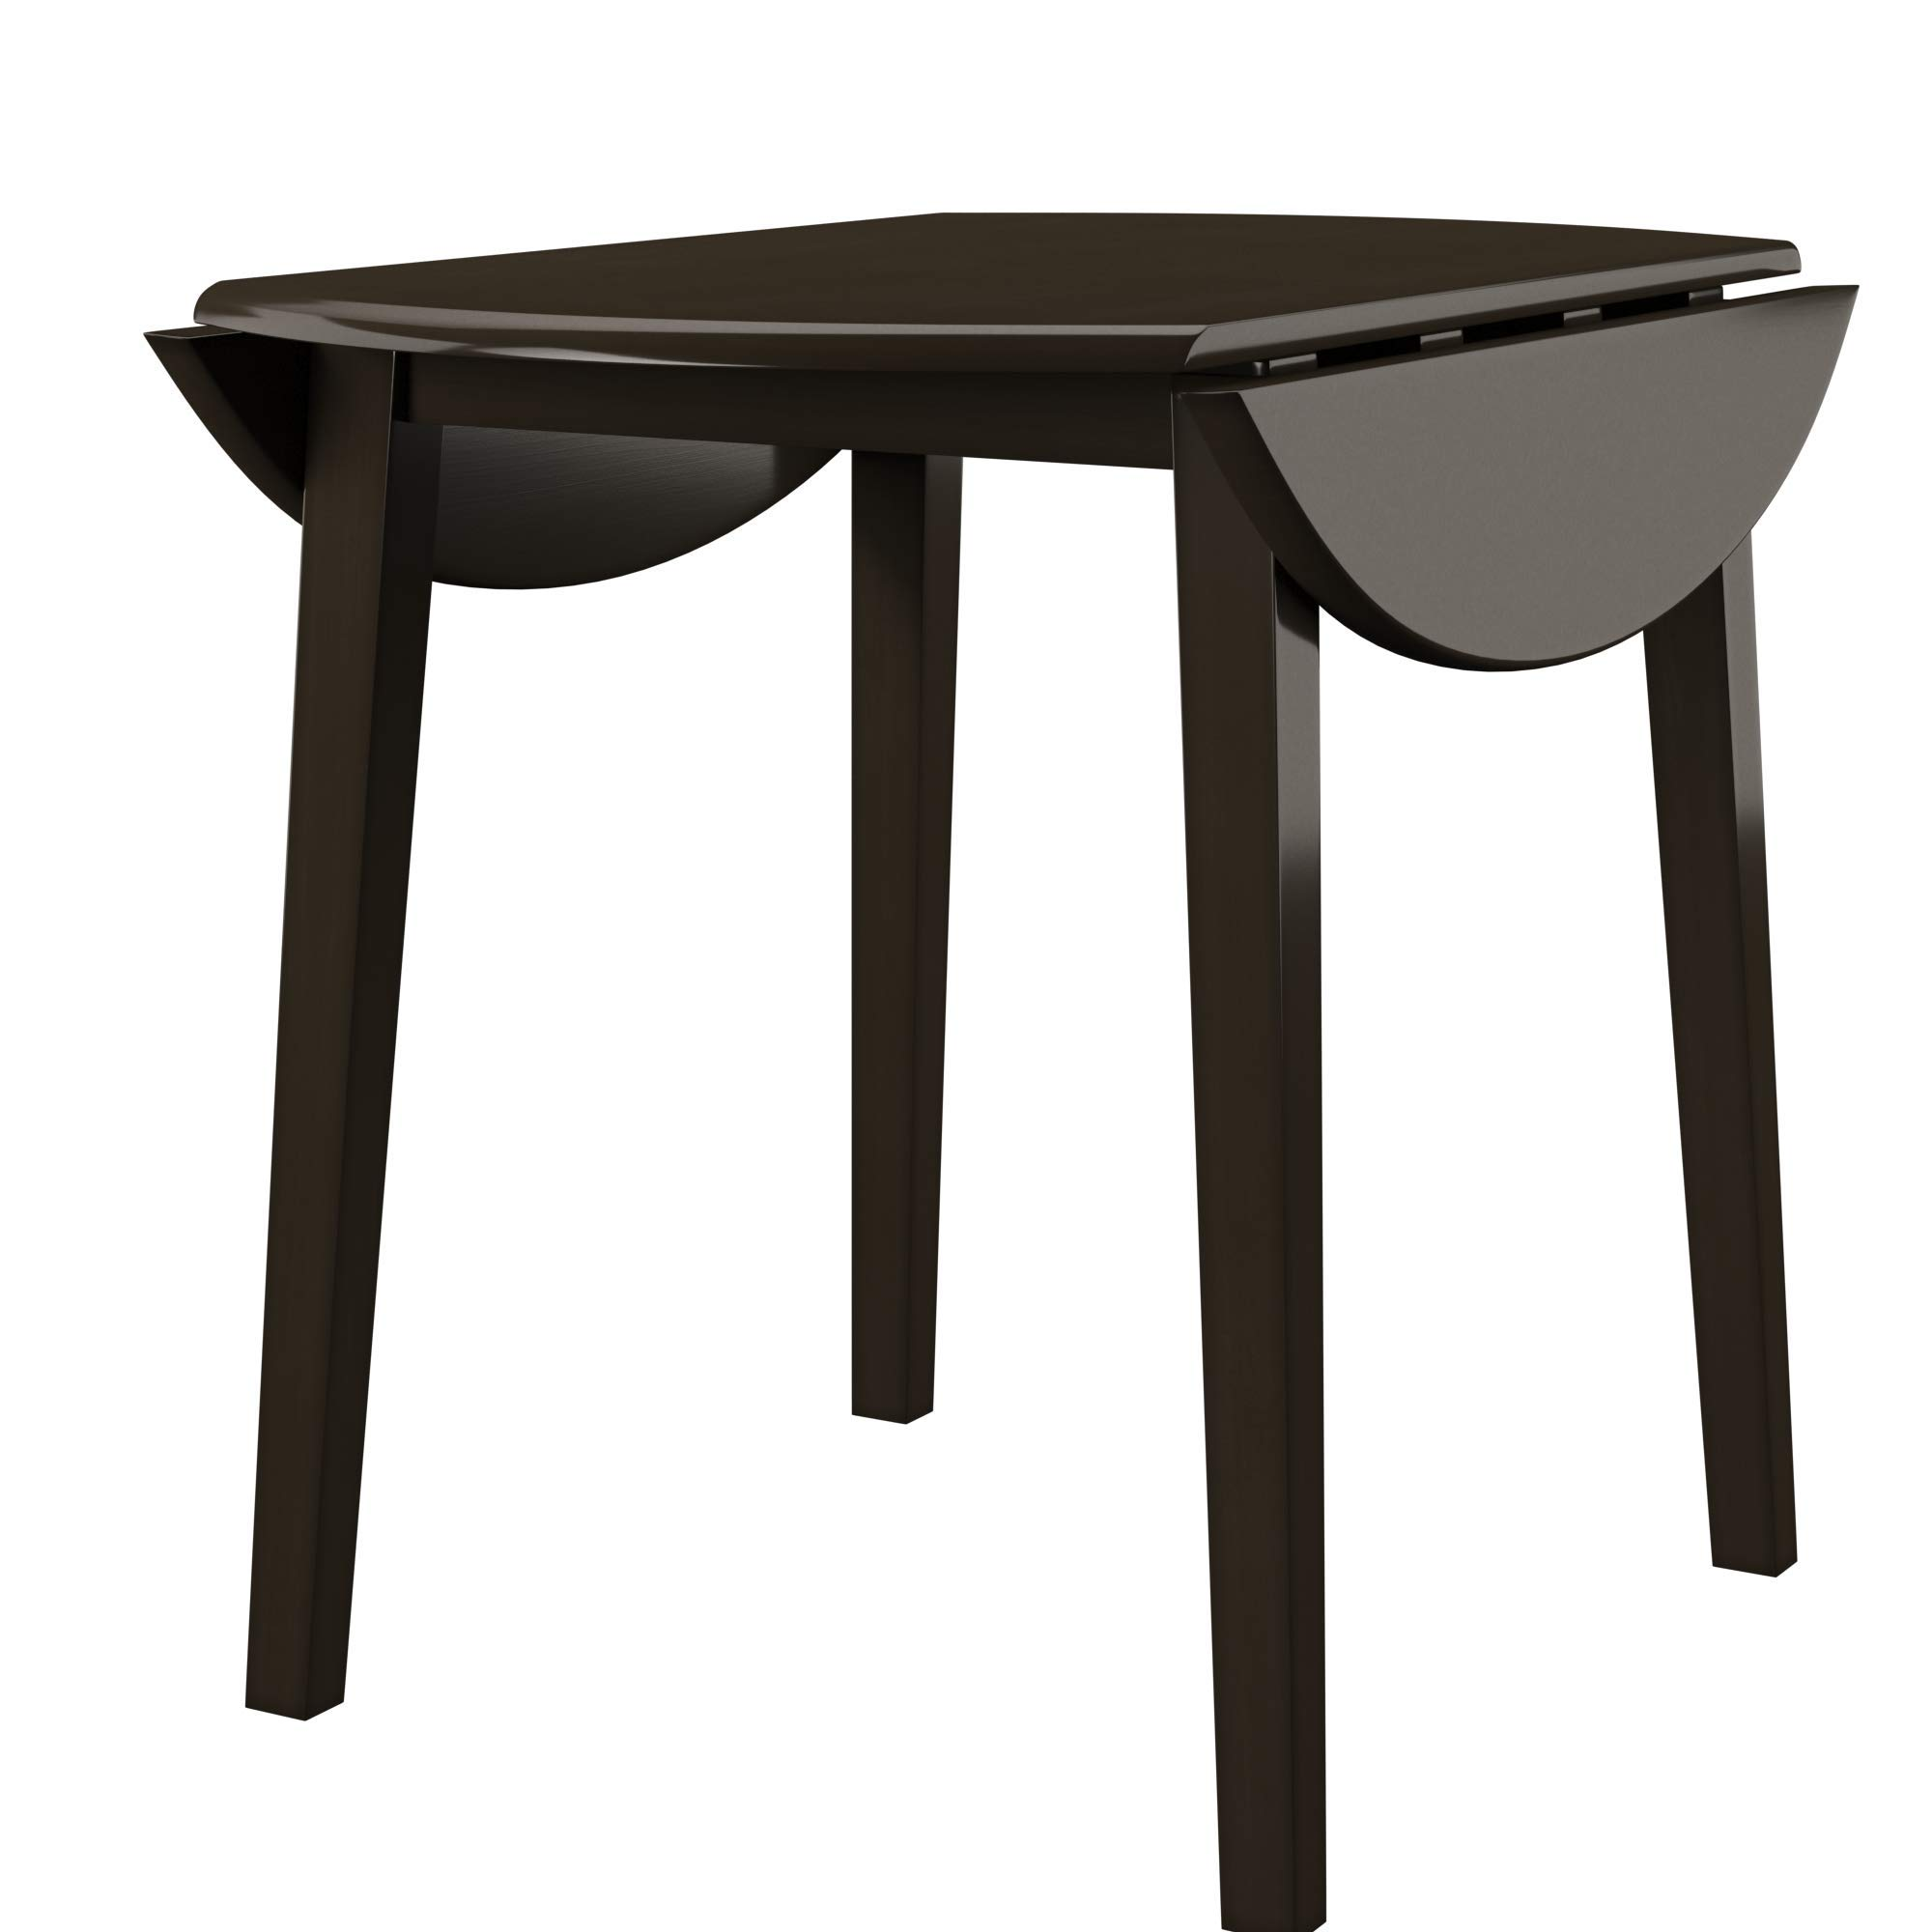 Ashley Furniture Signature Design - Hammis Dining Room Table - Drop Leaf Table - Dark Brown by Signature Design by Ashley